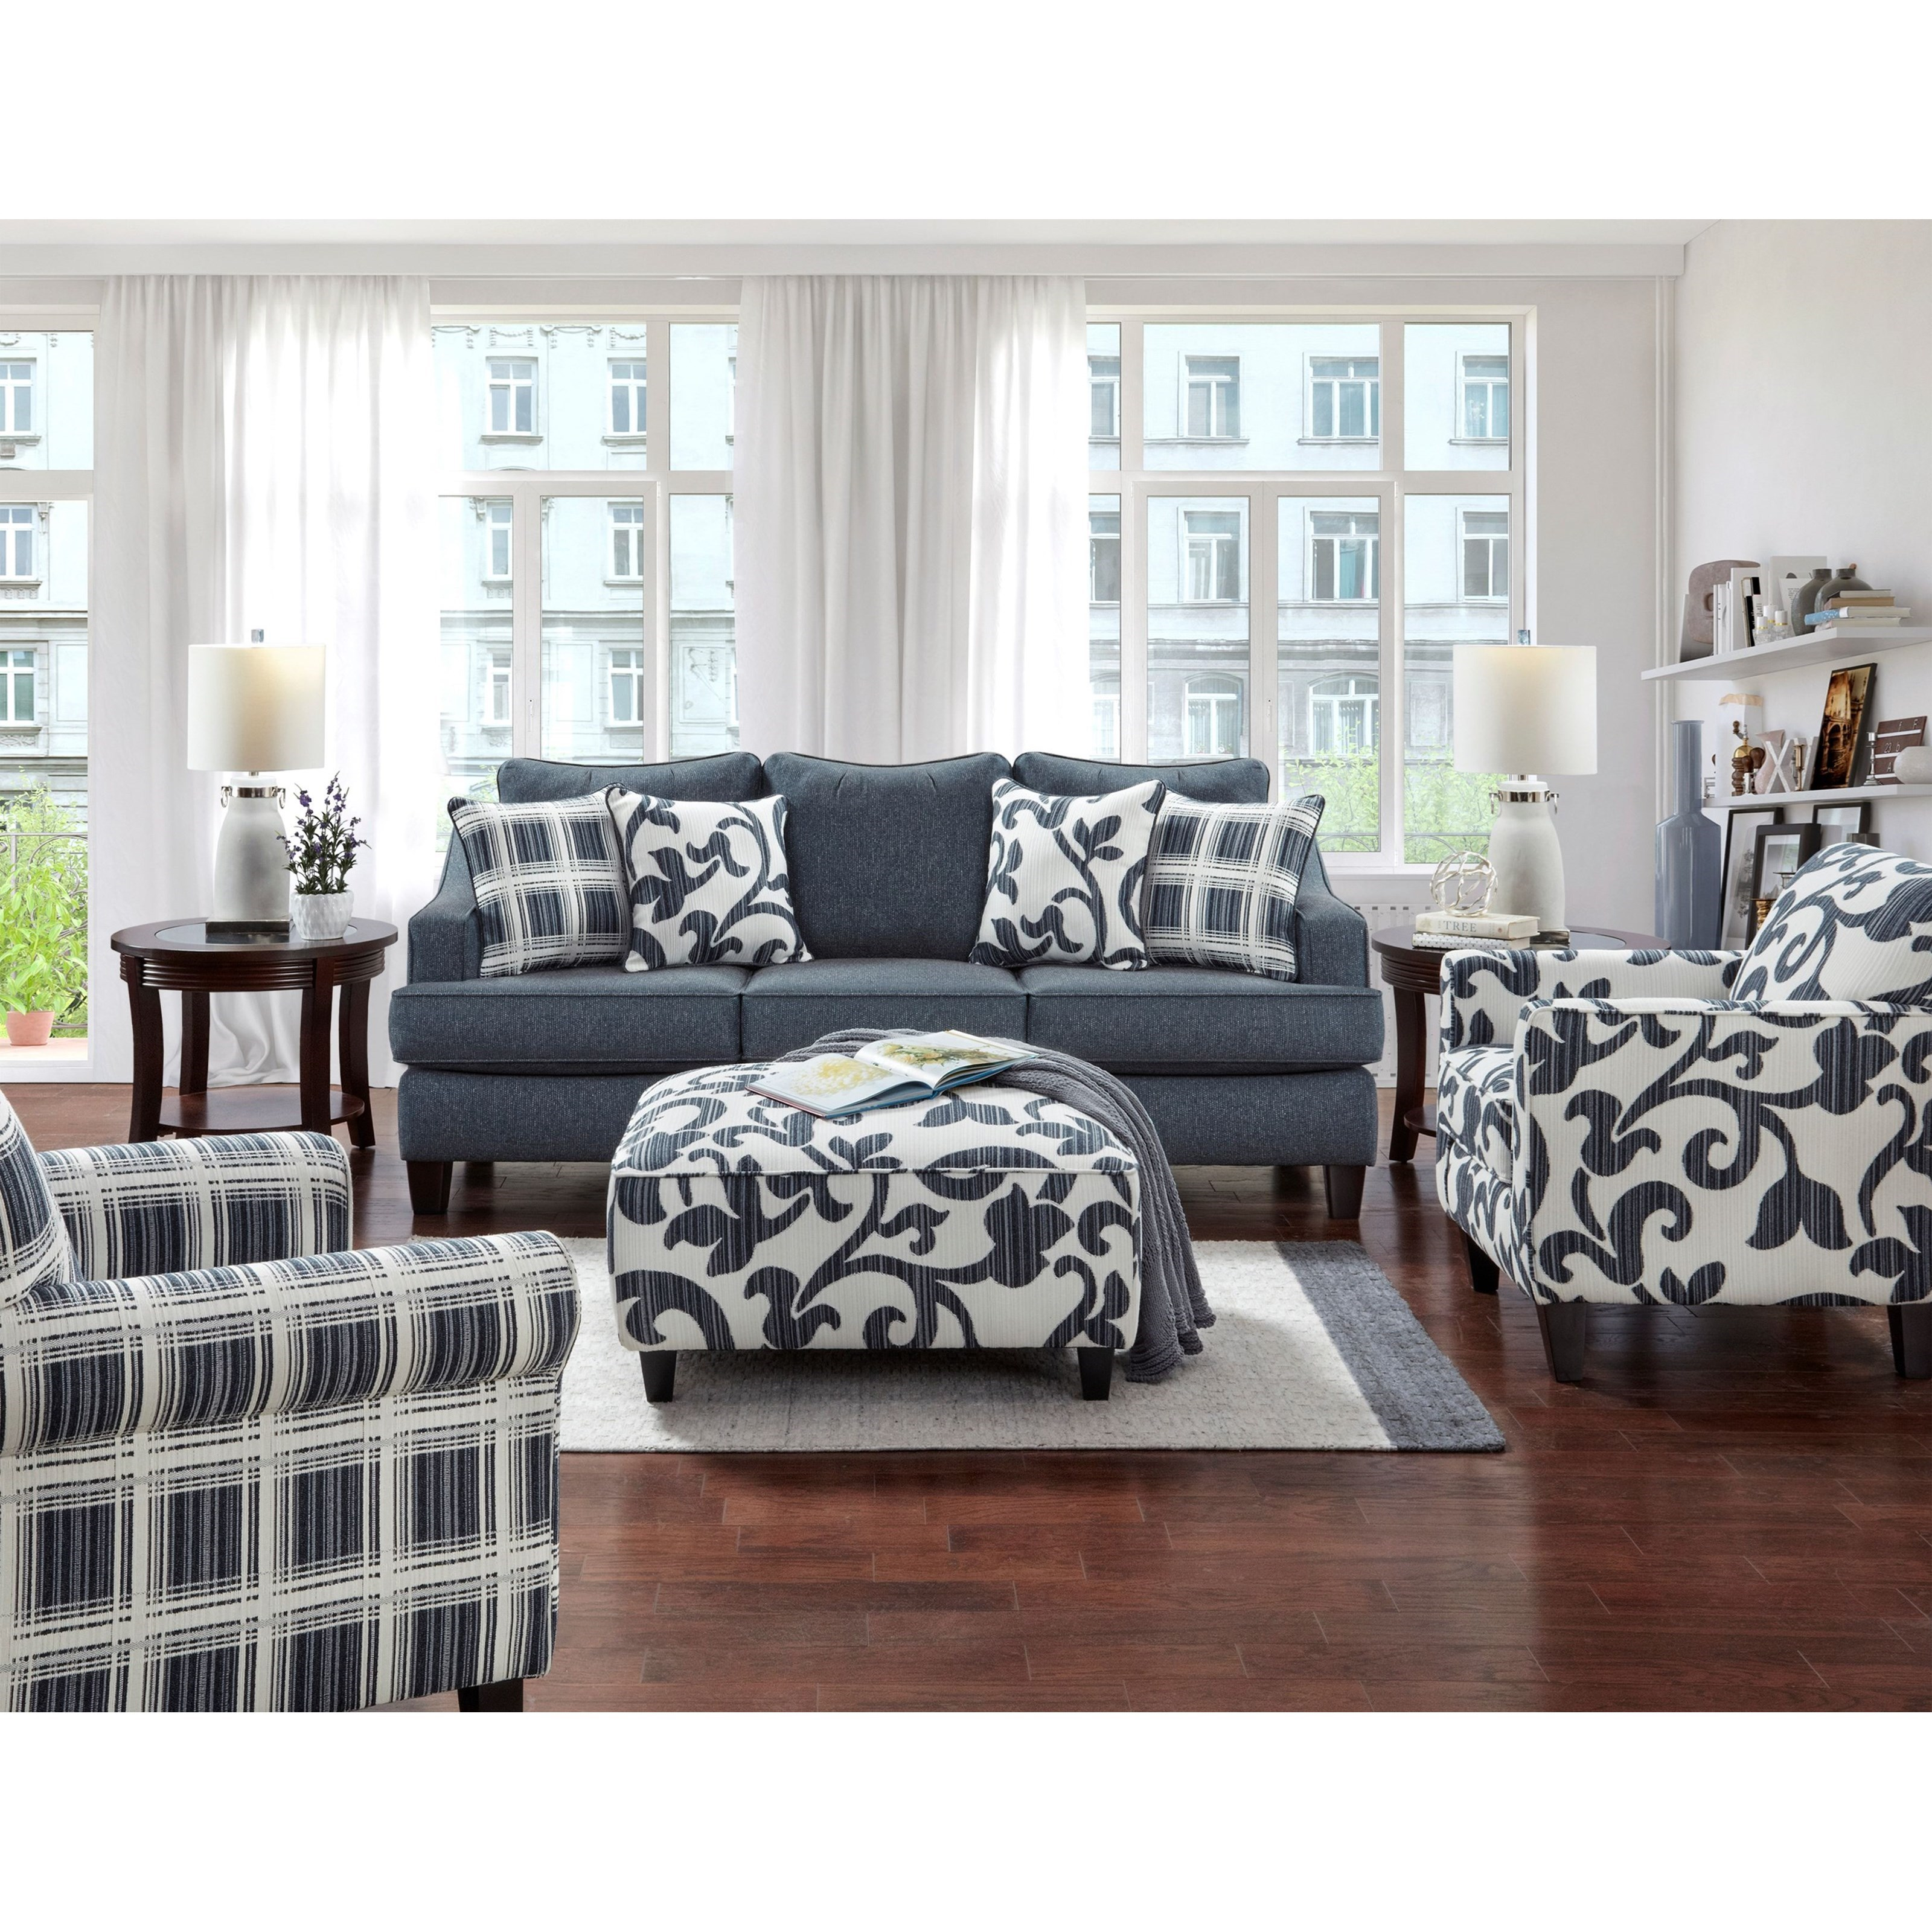 2330 Living Room Group by Fusion Furniture at Prime Brothers Furniture